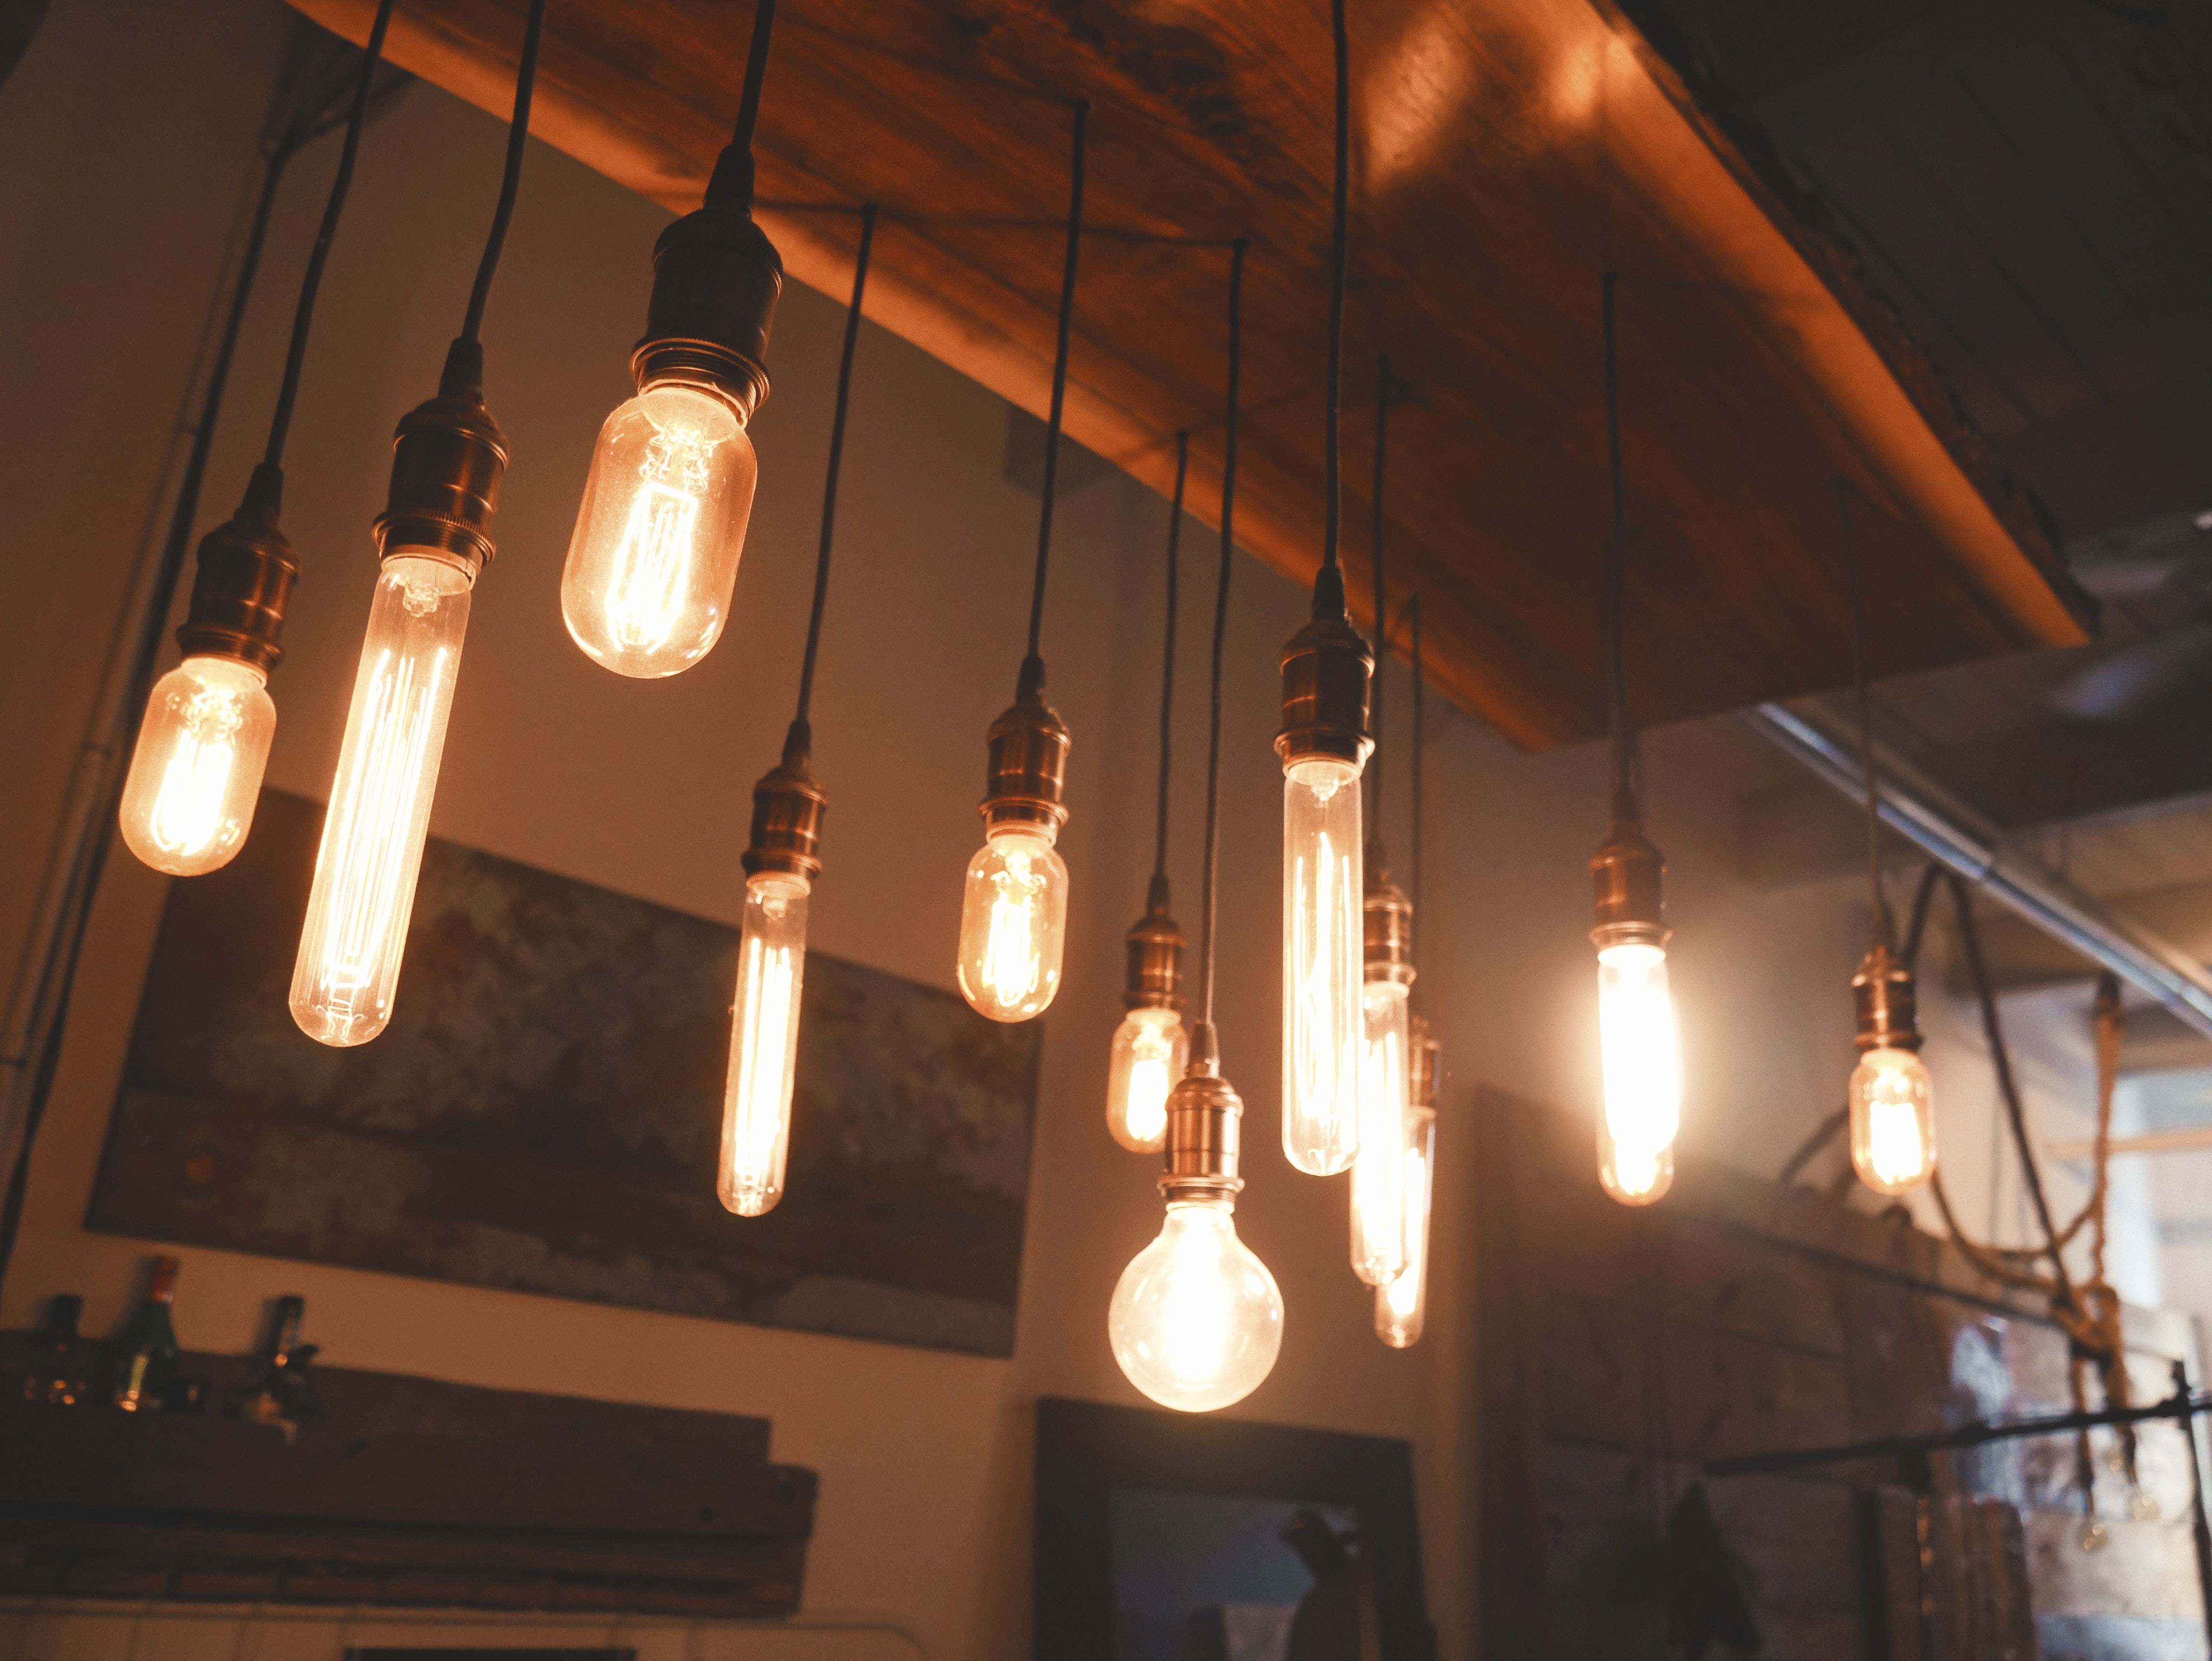 Brighten Up Your Home with Professional Lighting Installation